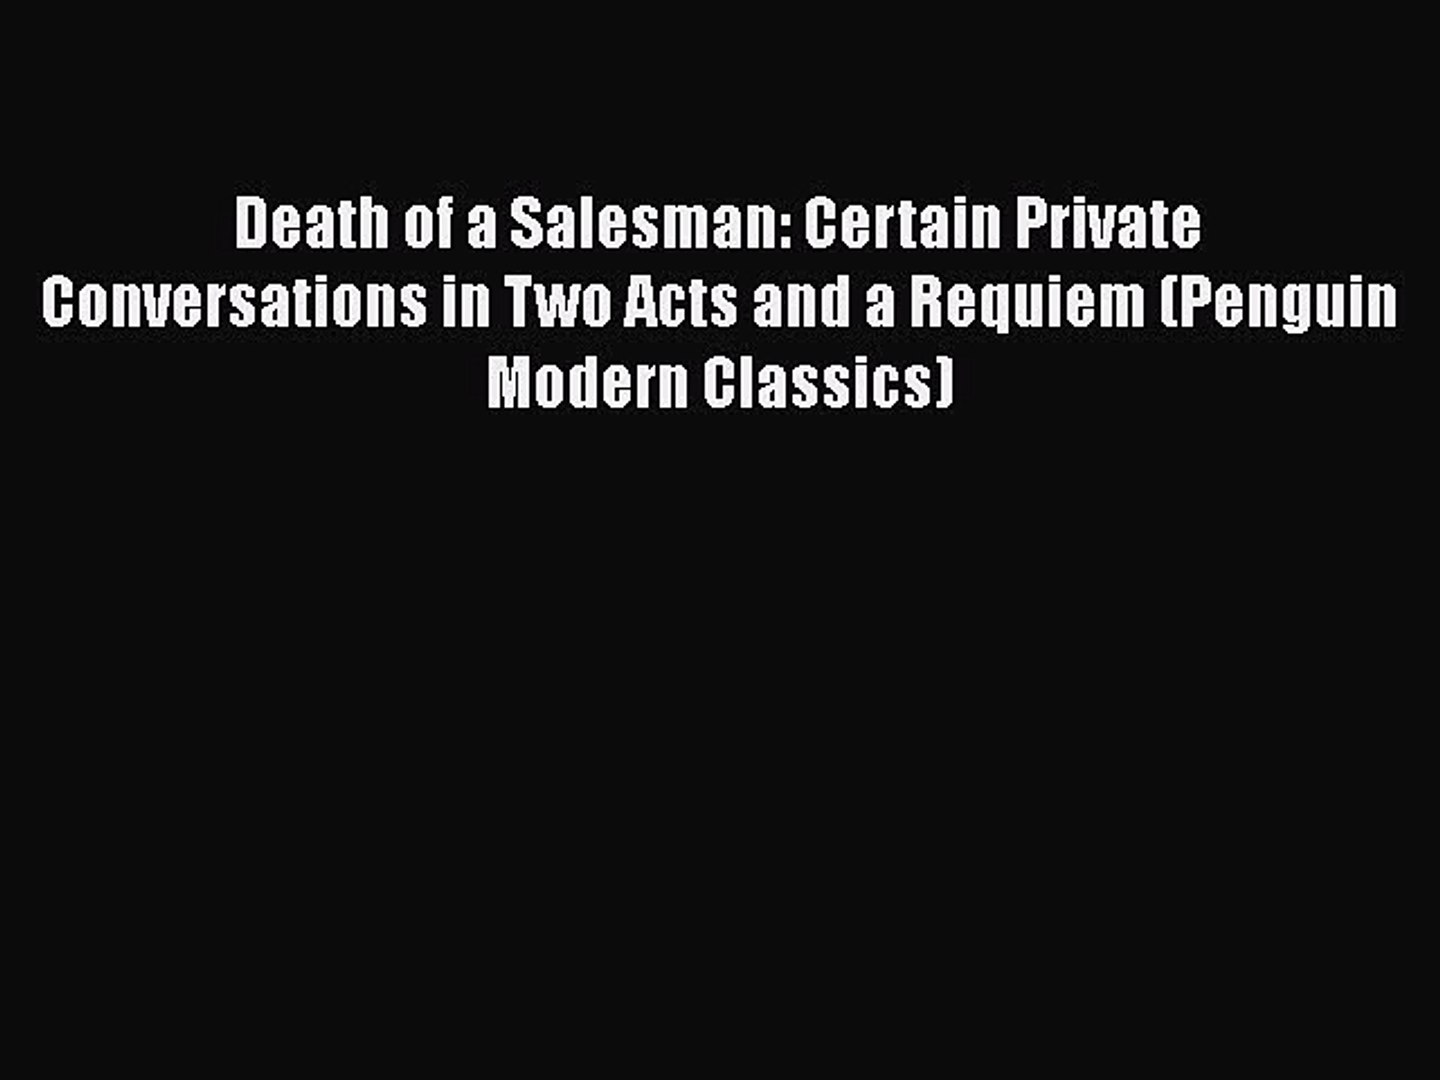 Death of a Salesman: Certain Private Conversations in Two Acts and a Requiem (Penguin Modern